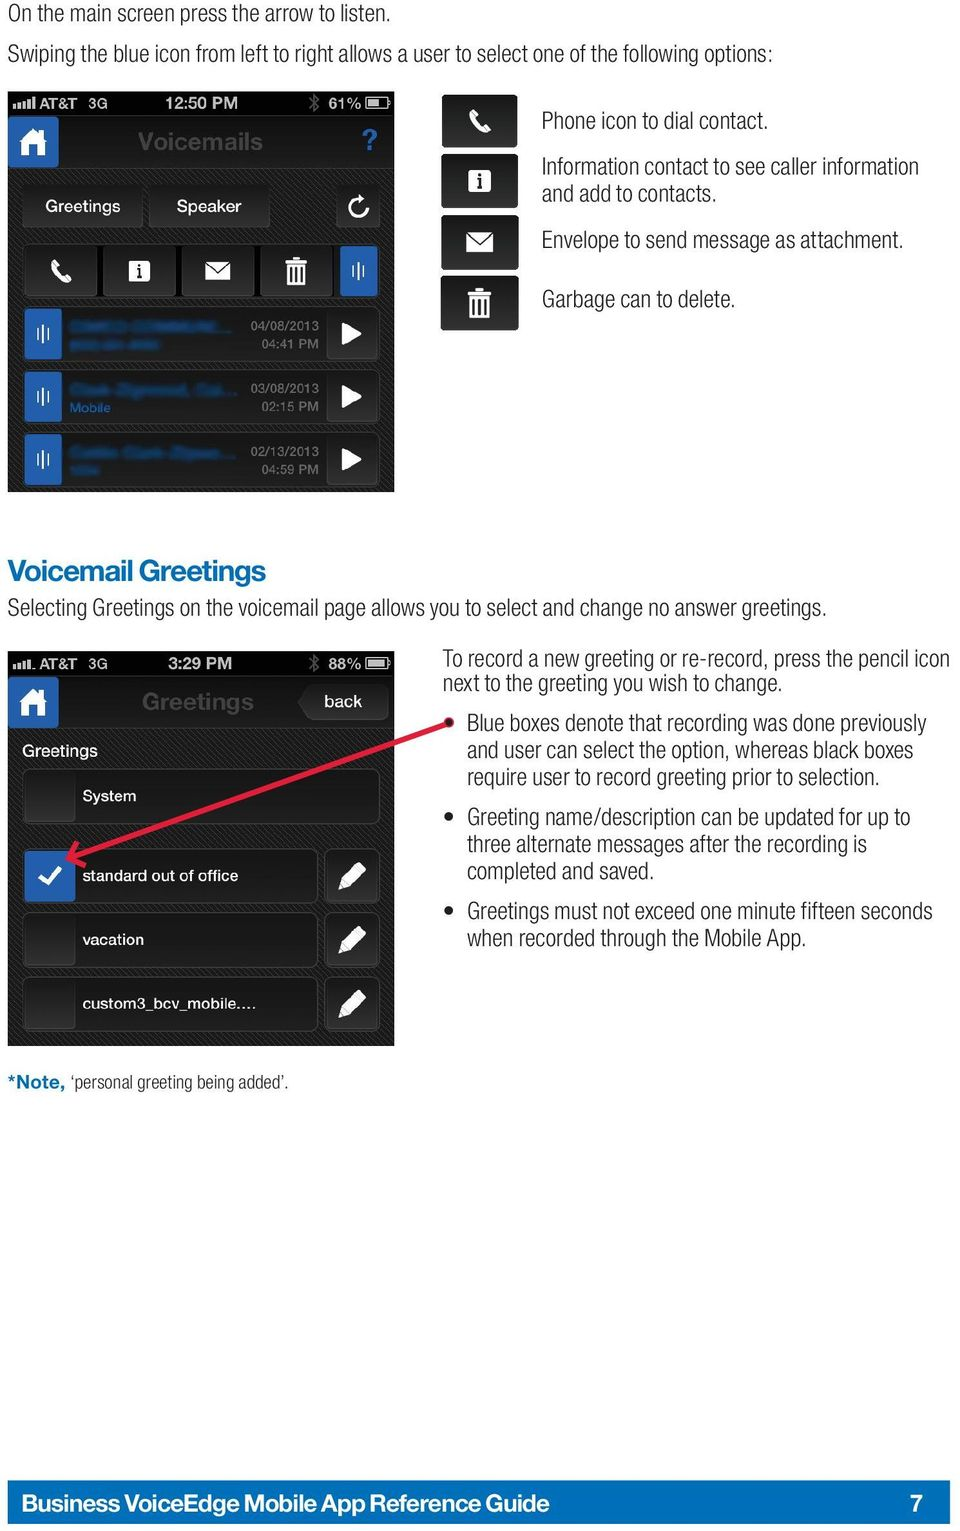 The comcast business voiceedge mobile app a quick start setup guide voicemail greetings selecting greetings on the voicemail page allows you to select and change no answer kristyandbryce Gallery